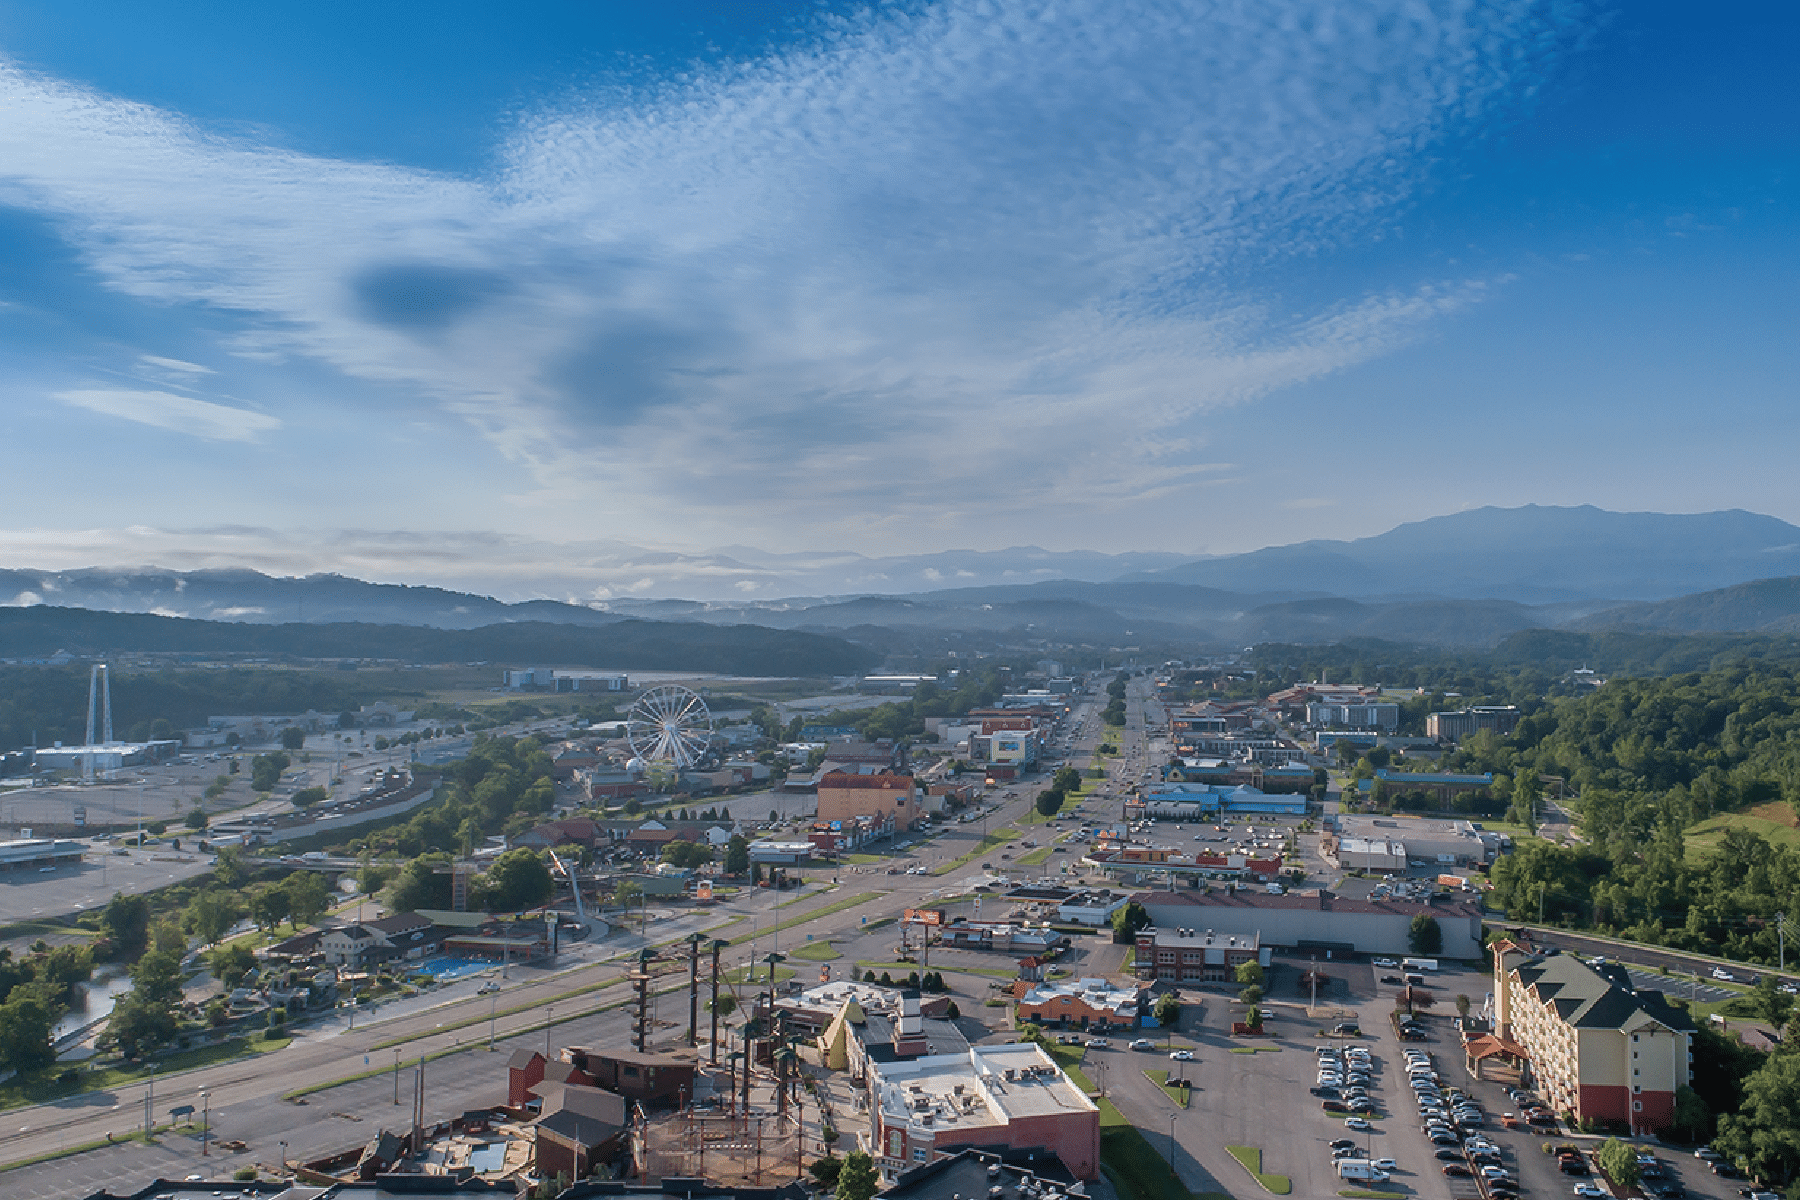 Pigeon Forge Tennesse from an aerial view in 2020.